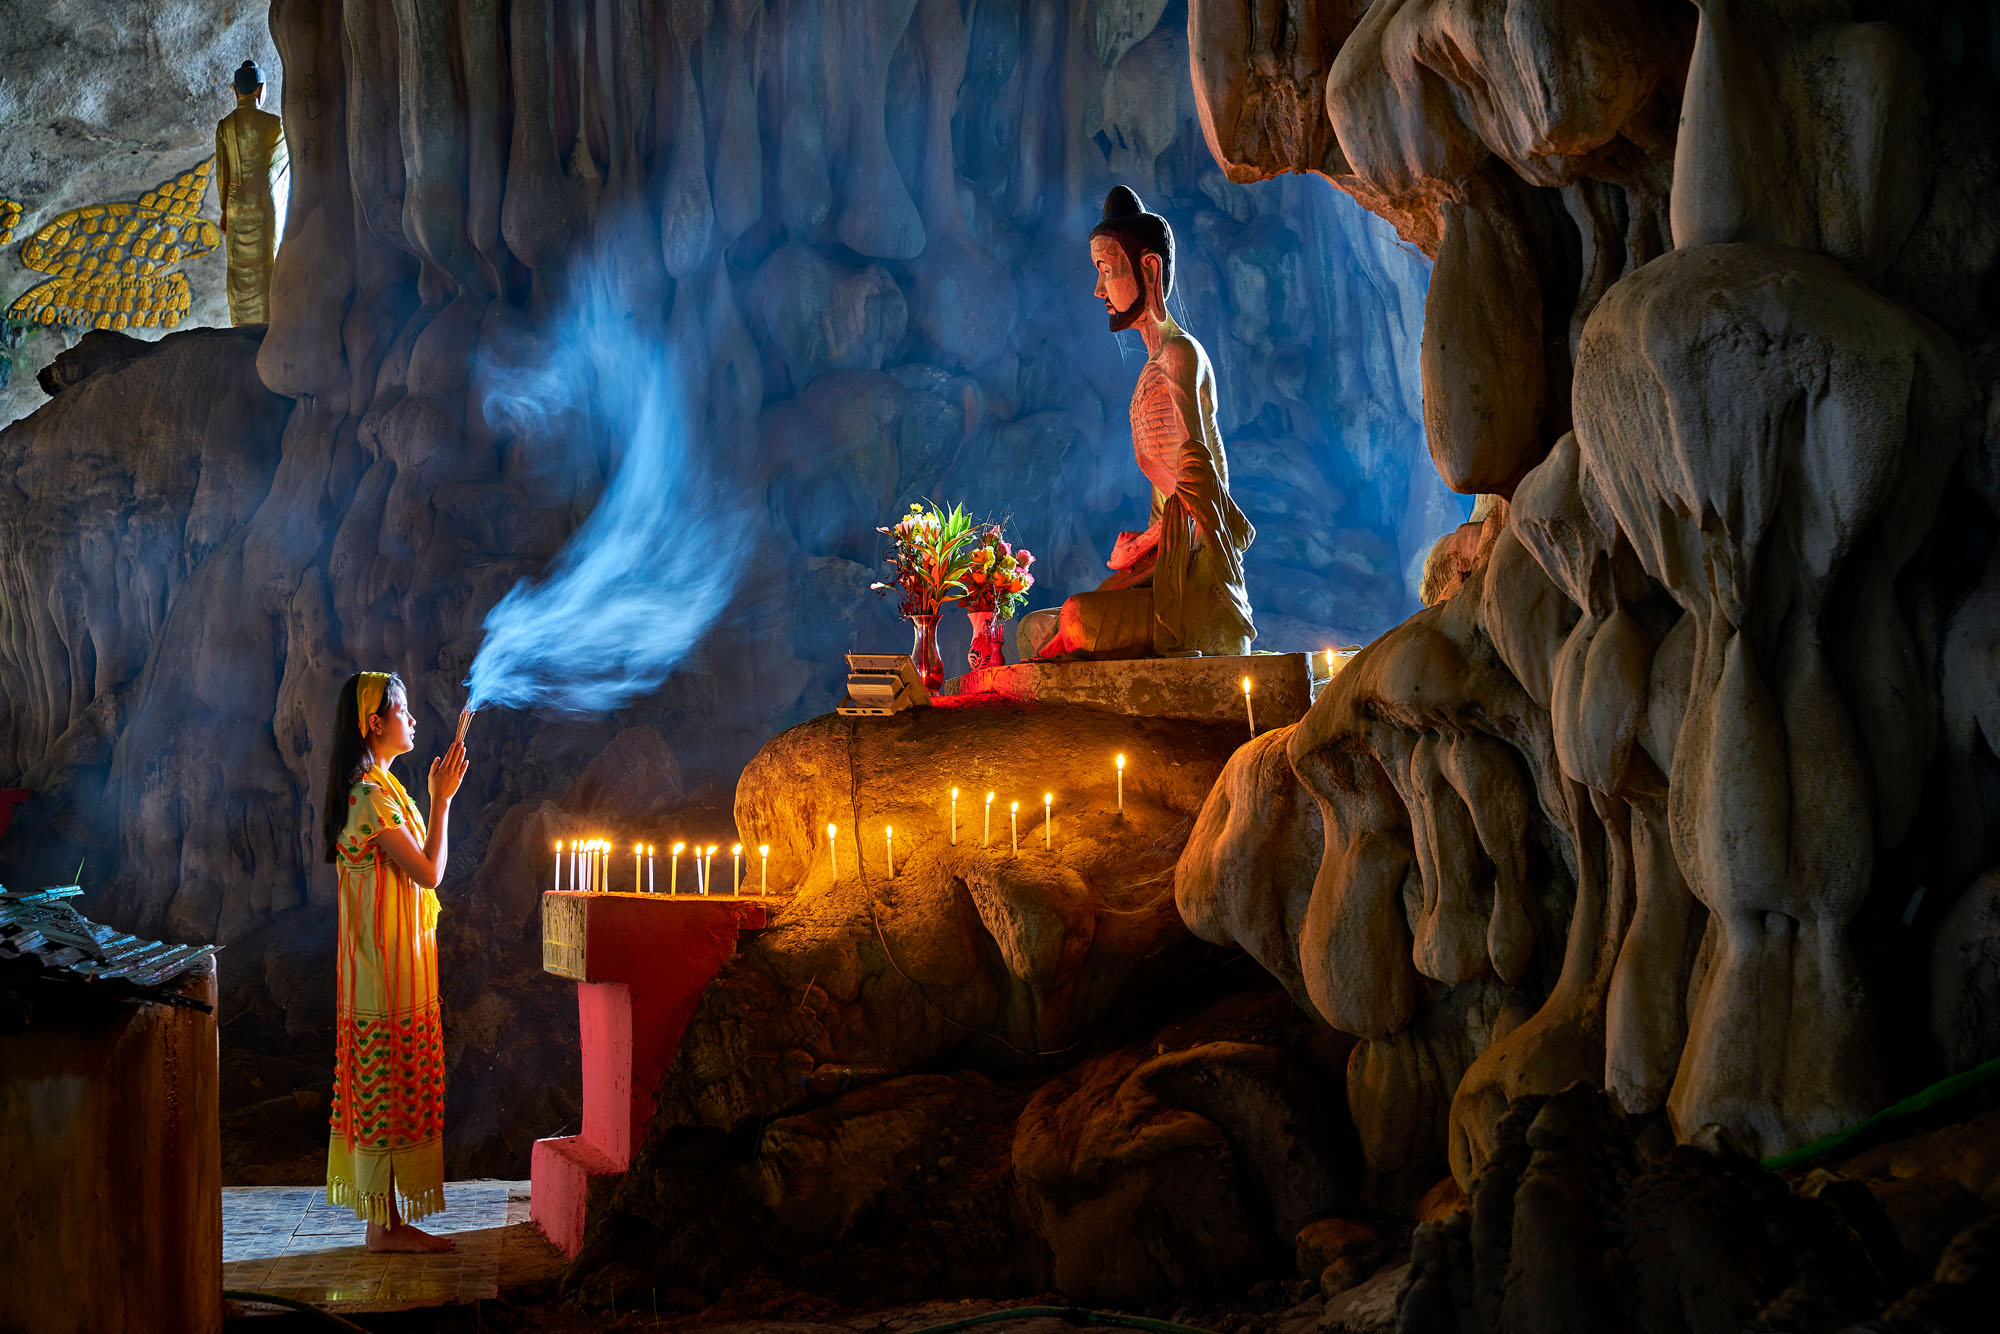 ubilla buddhist singles Ubilla's best 100% free buddhist dating site meet thousands of single buddhists in ubilla with mingle2's free buddhist personal ads and chat rooms our network of buddhist men and women in ubilla is the perfect place to make buddhist friends or find a buddhist boyfriend or girlfriend in ubilla.